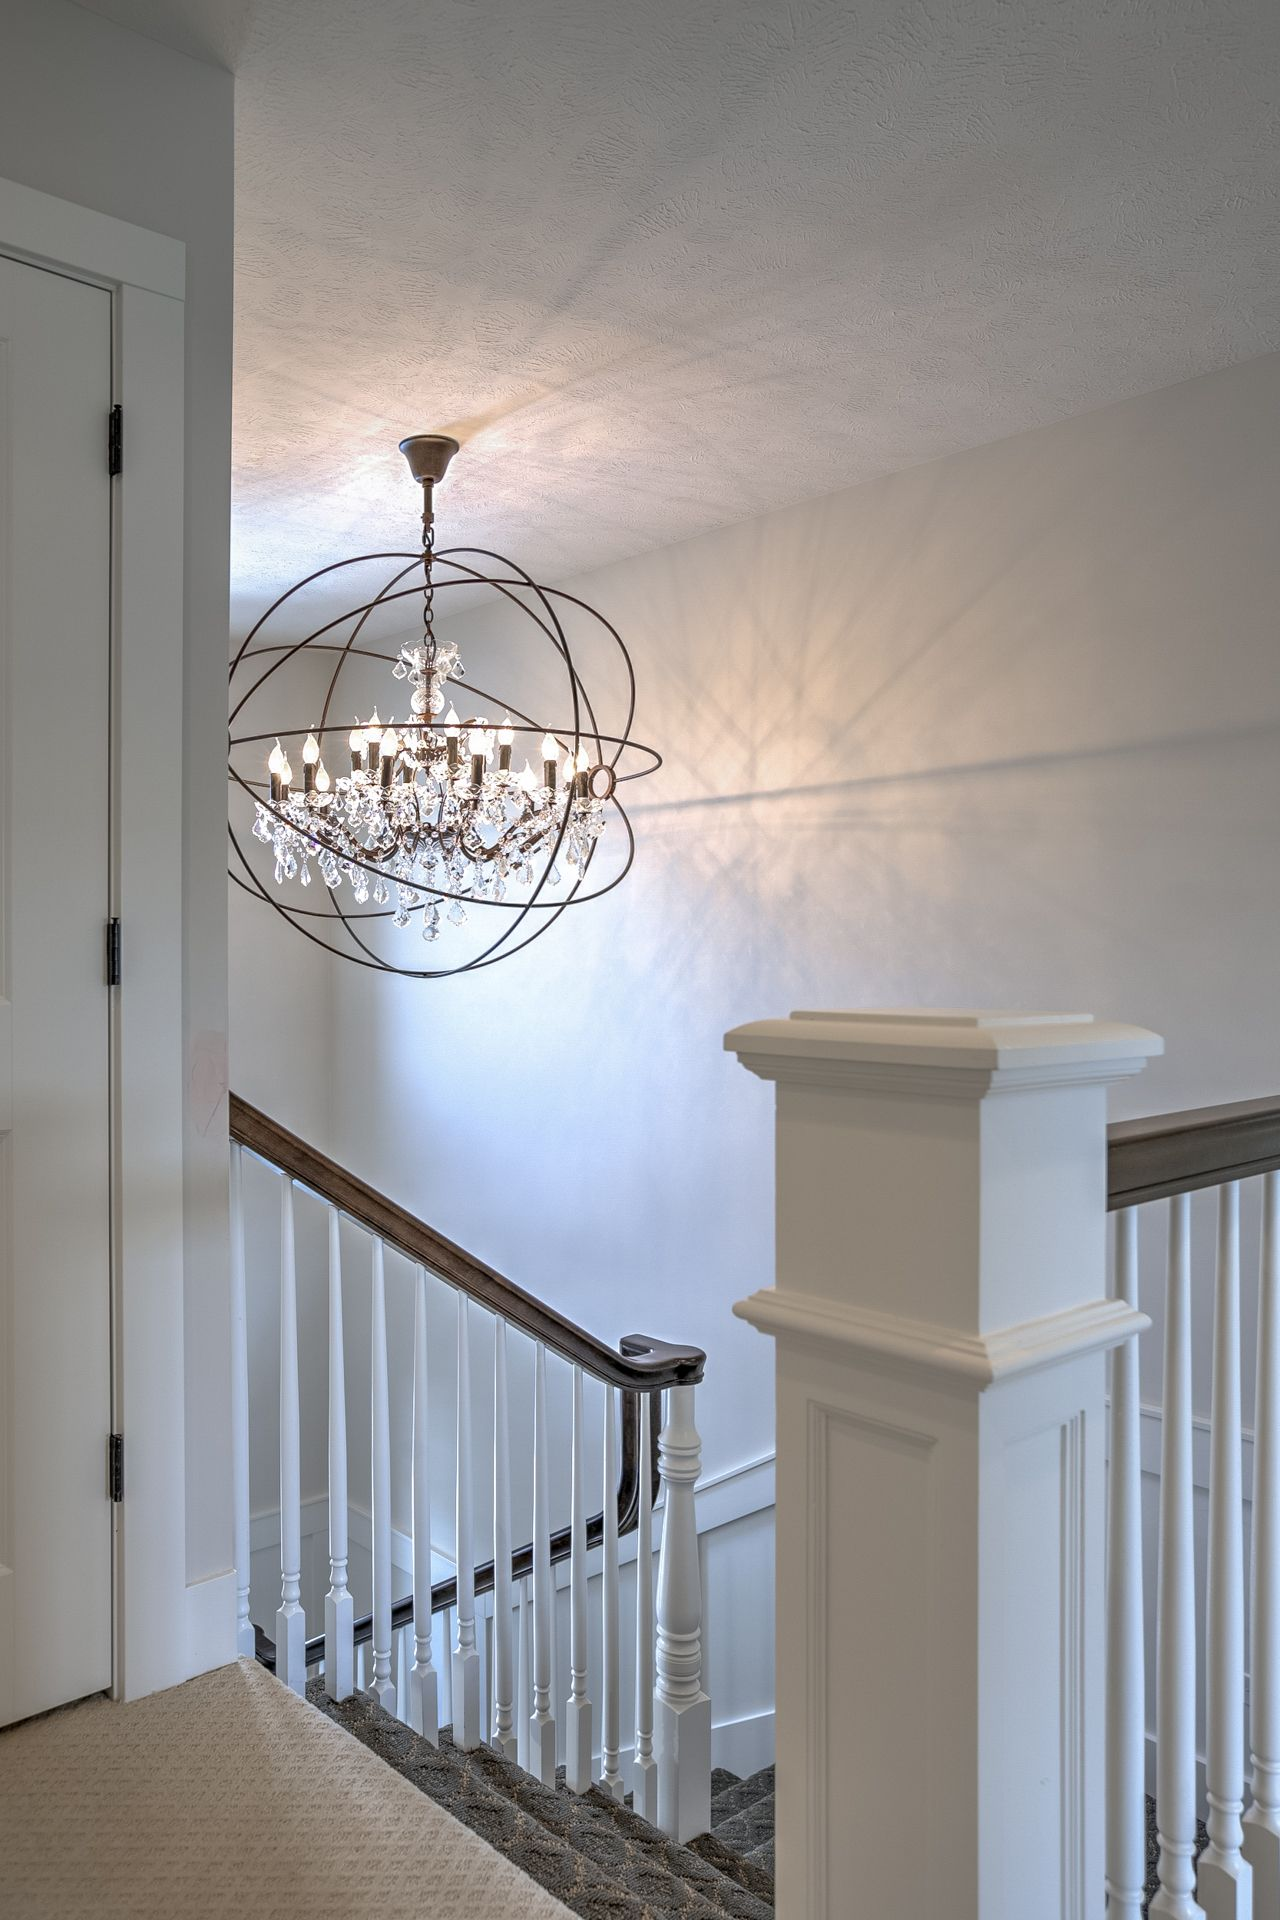 Foyer Cascading 24 Bulbs Glass Chandelier For Entry Modern